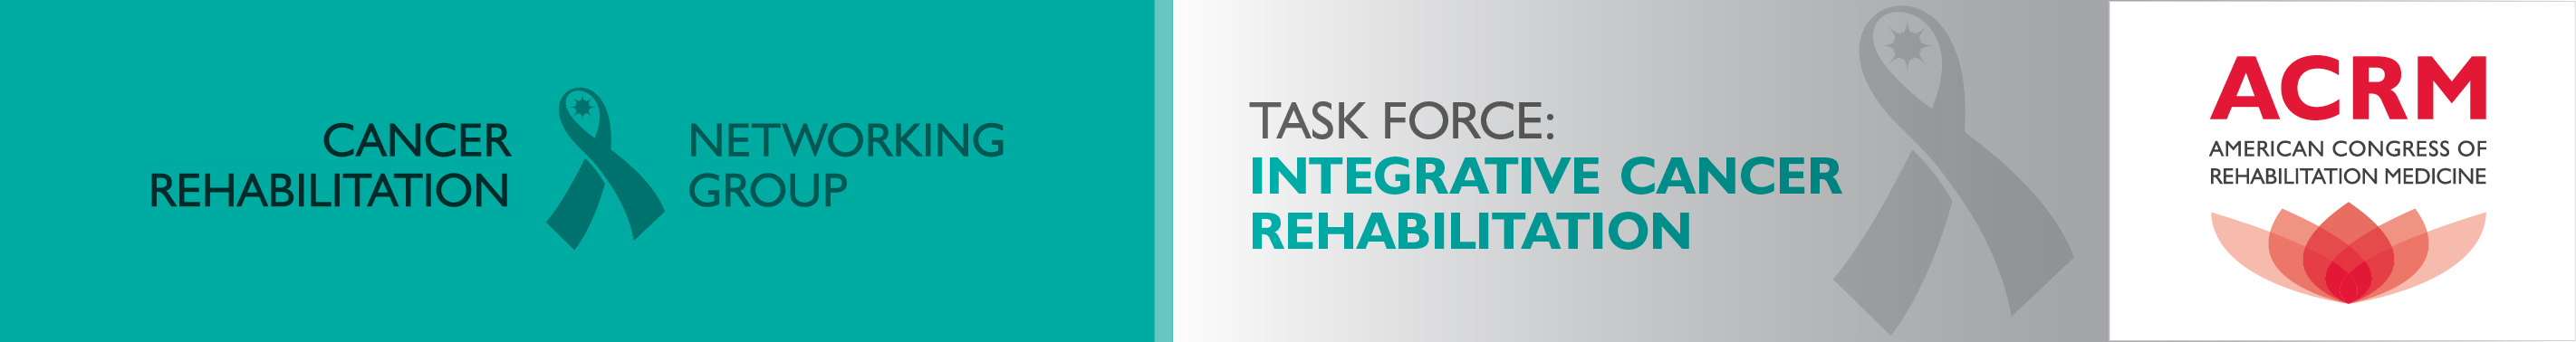 Integrative Cancer Rehabilitation Task Force header